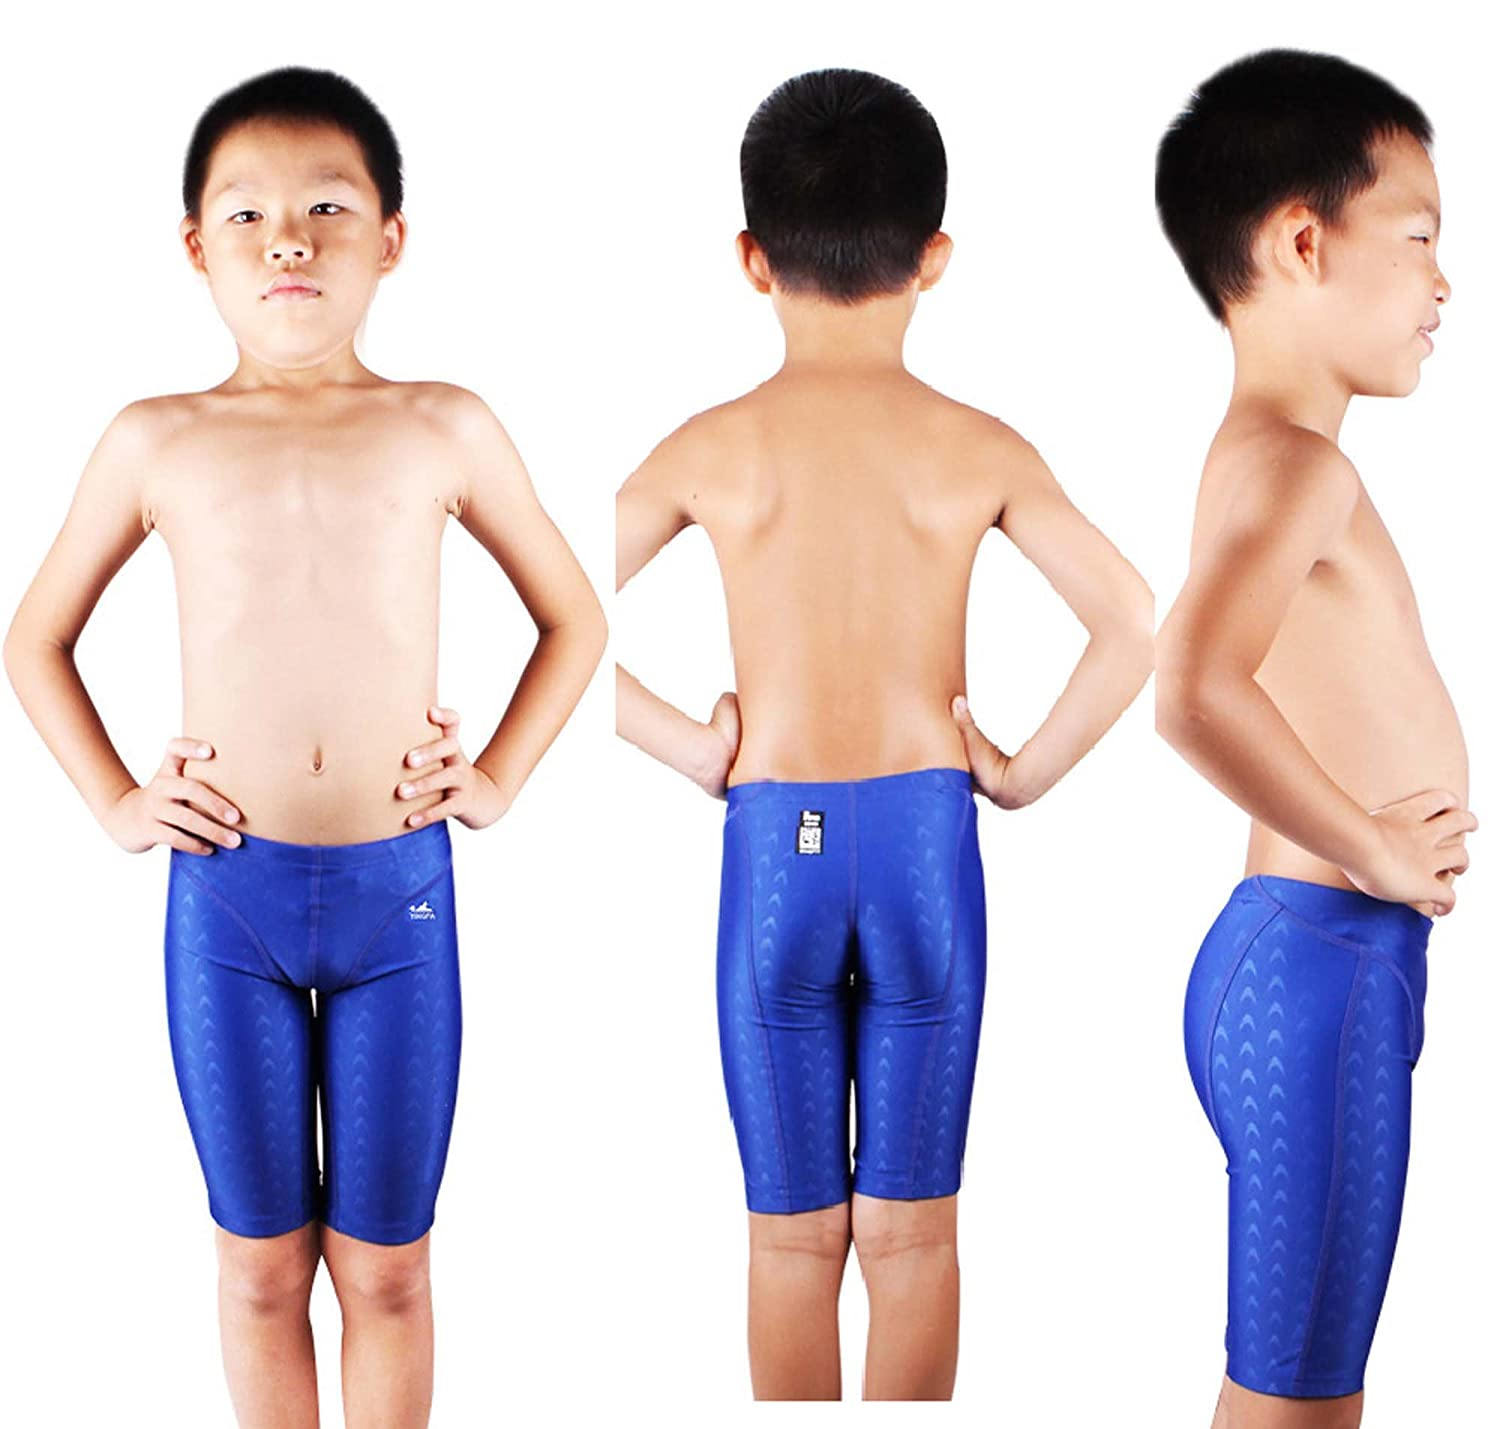 f272810f11 Amazon.com : YingFa FINA Approved, 9205-2 Sharkskin Swimming Jammers for boy  Racing and Training Swimming Trunks Blue Size 26 : Sports & Outdoors